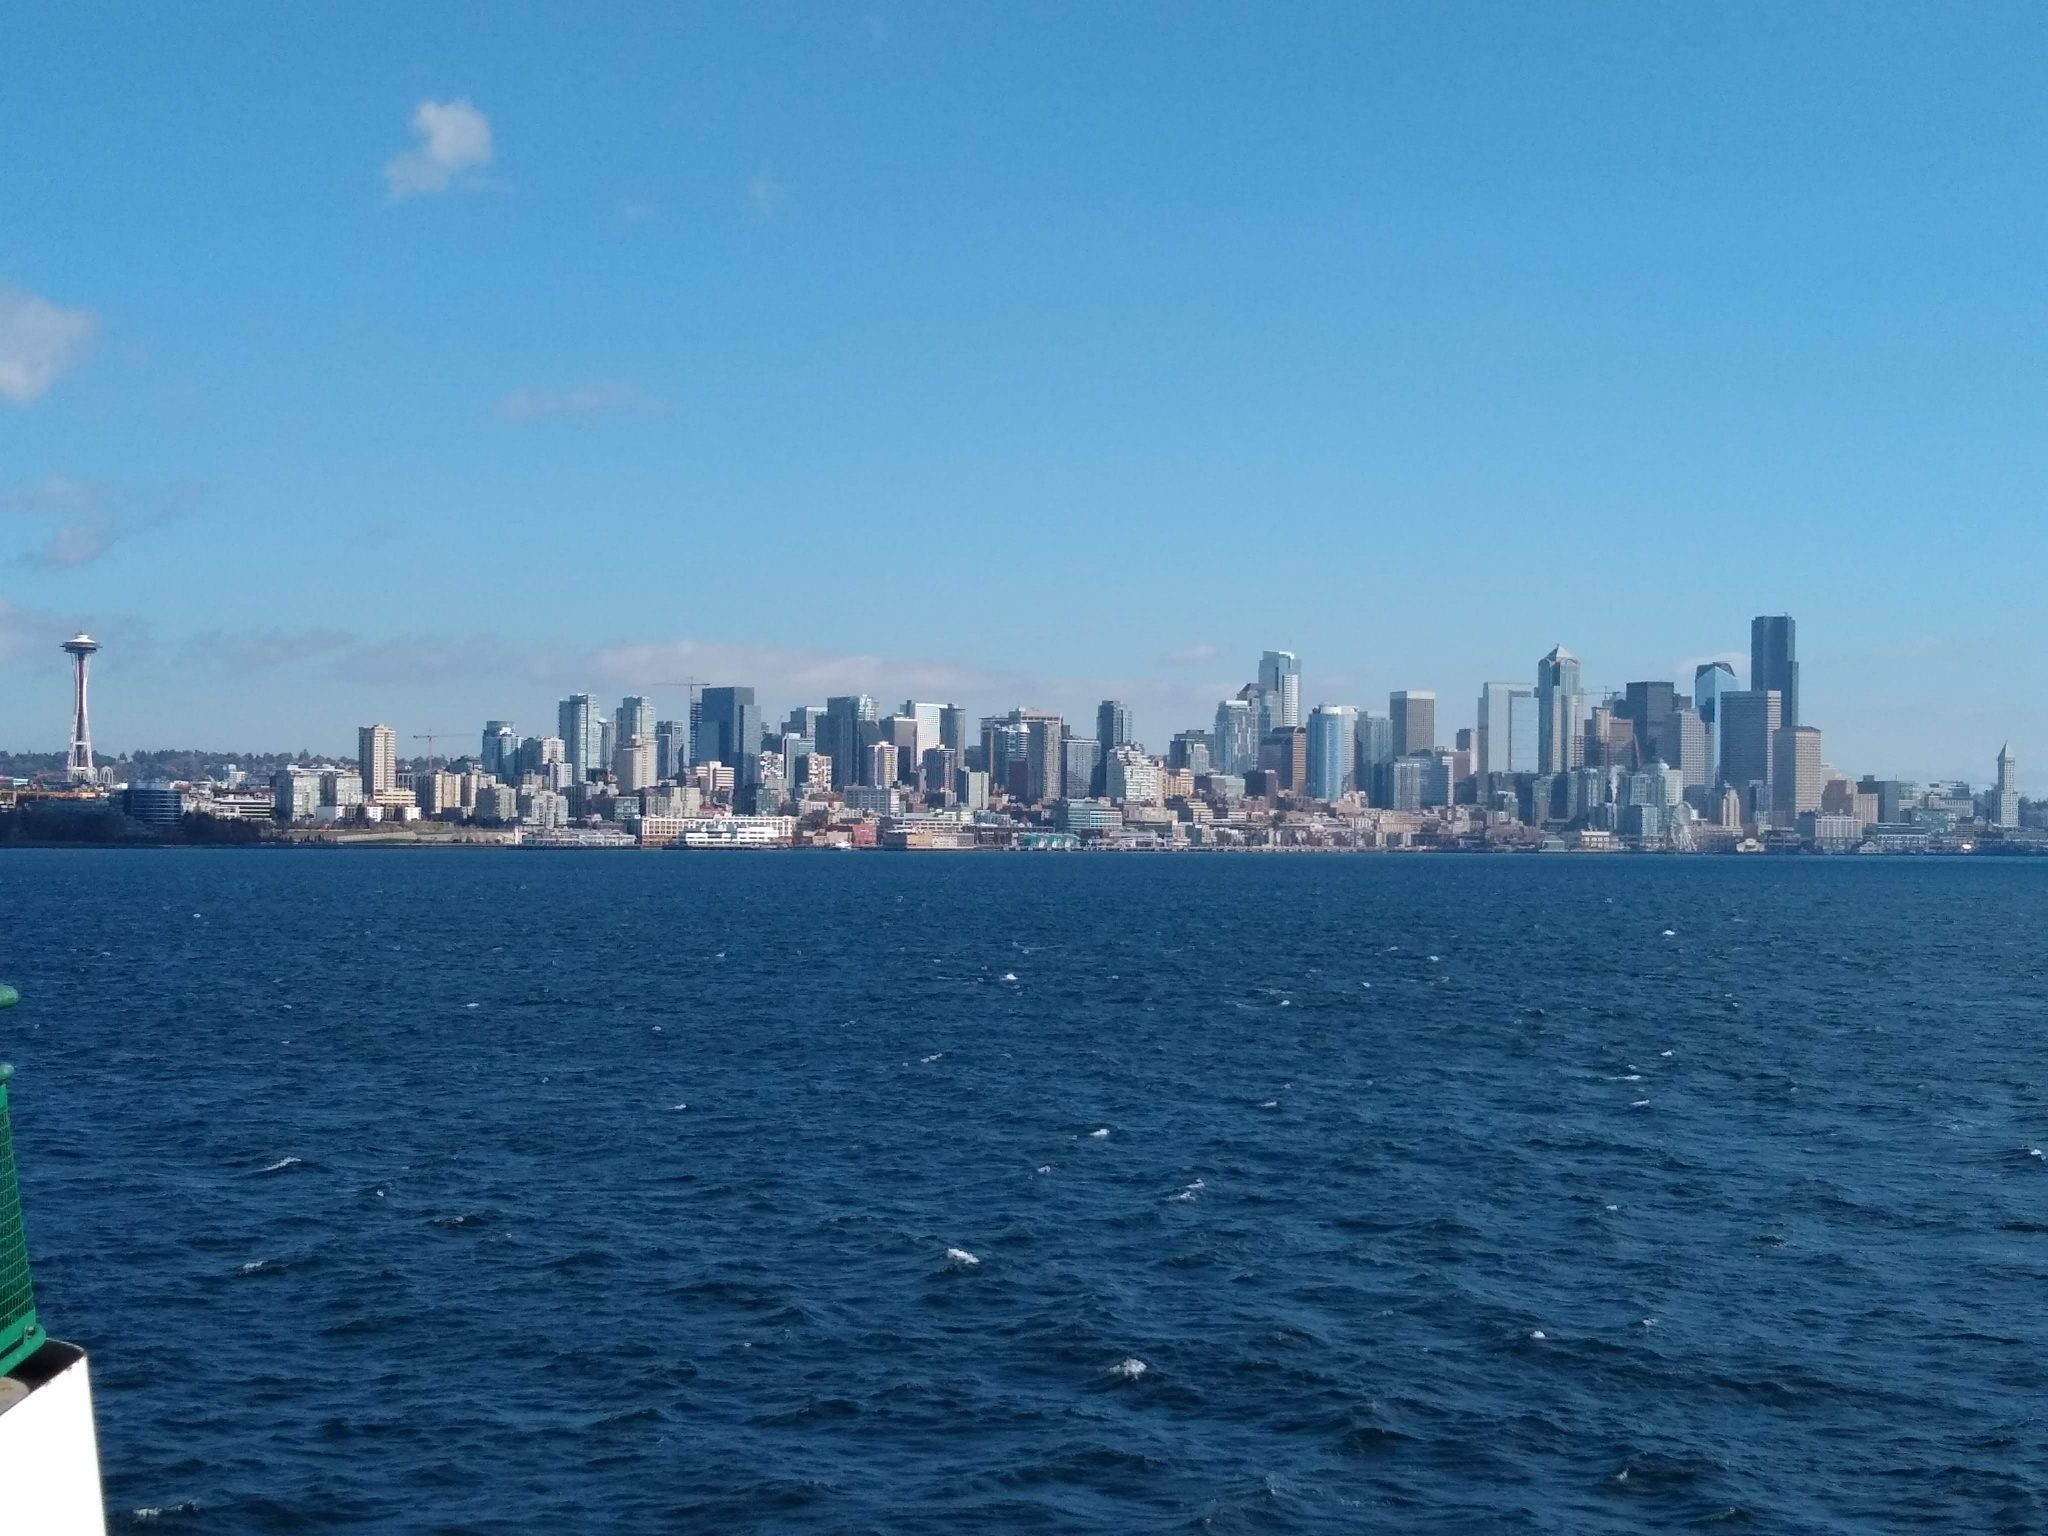 The Seattle city skyline seen from the water